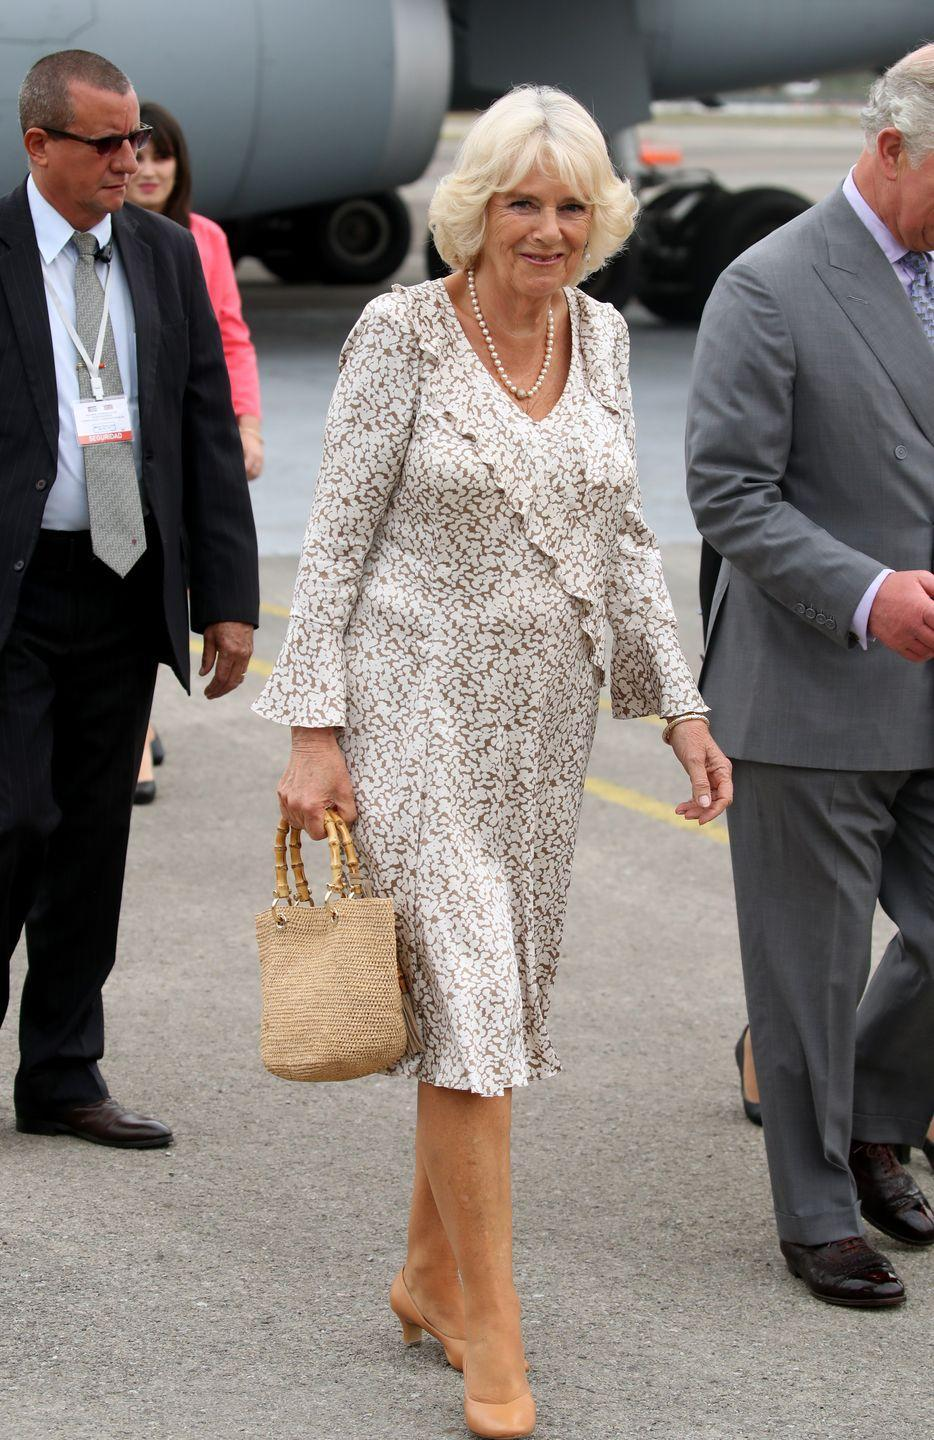 <p>For the royal couple's historic visit to Cuba, Camilla arrived wearing a ruffled brown and white printed dress. She complimented her look with a straw bag, nude heels, and a long-stranded pearl necklace. </p>